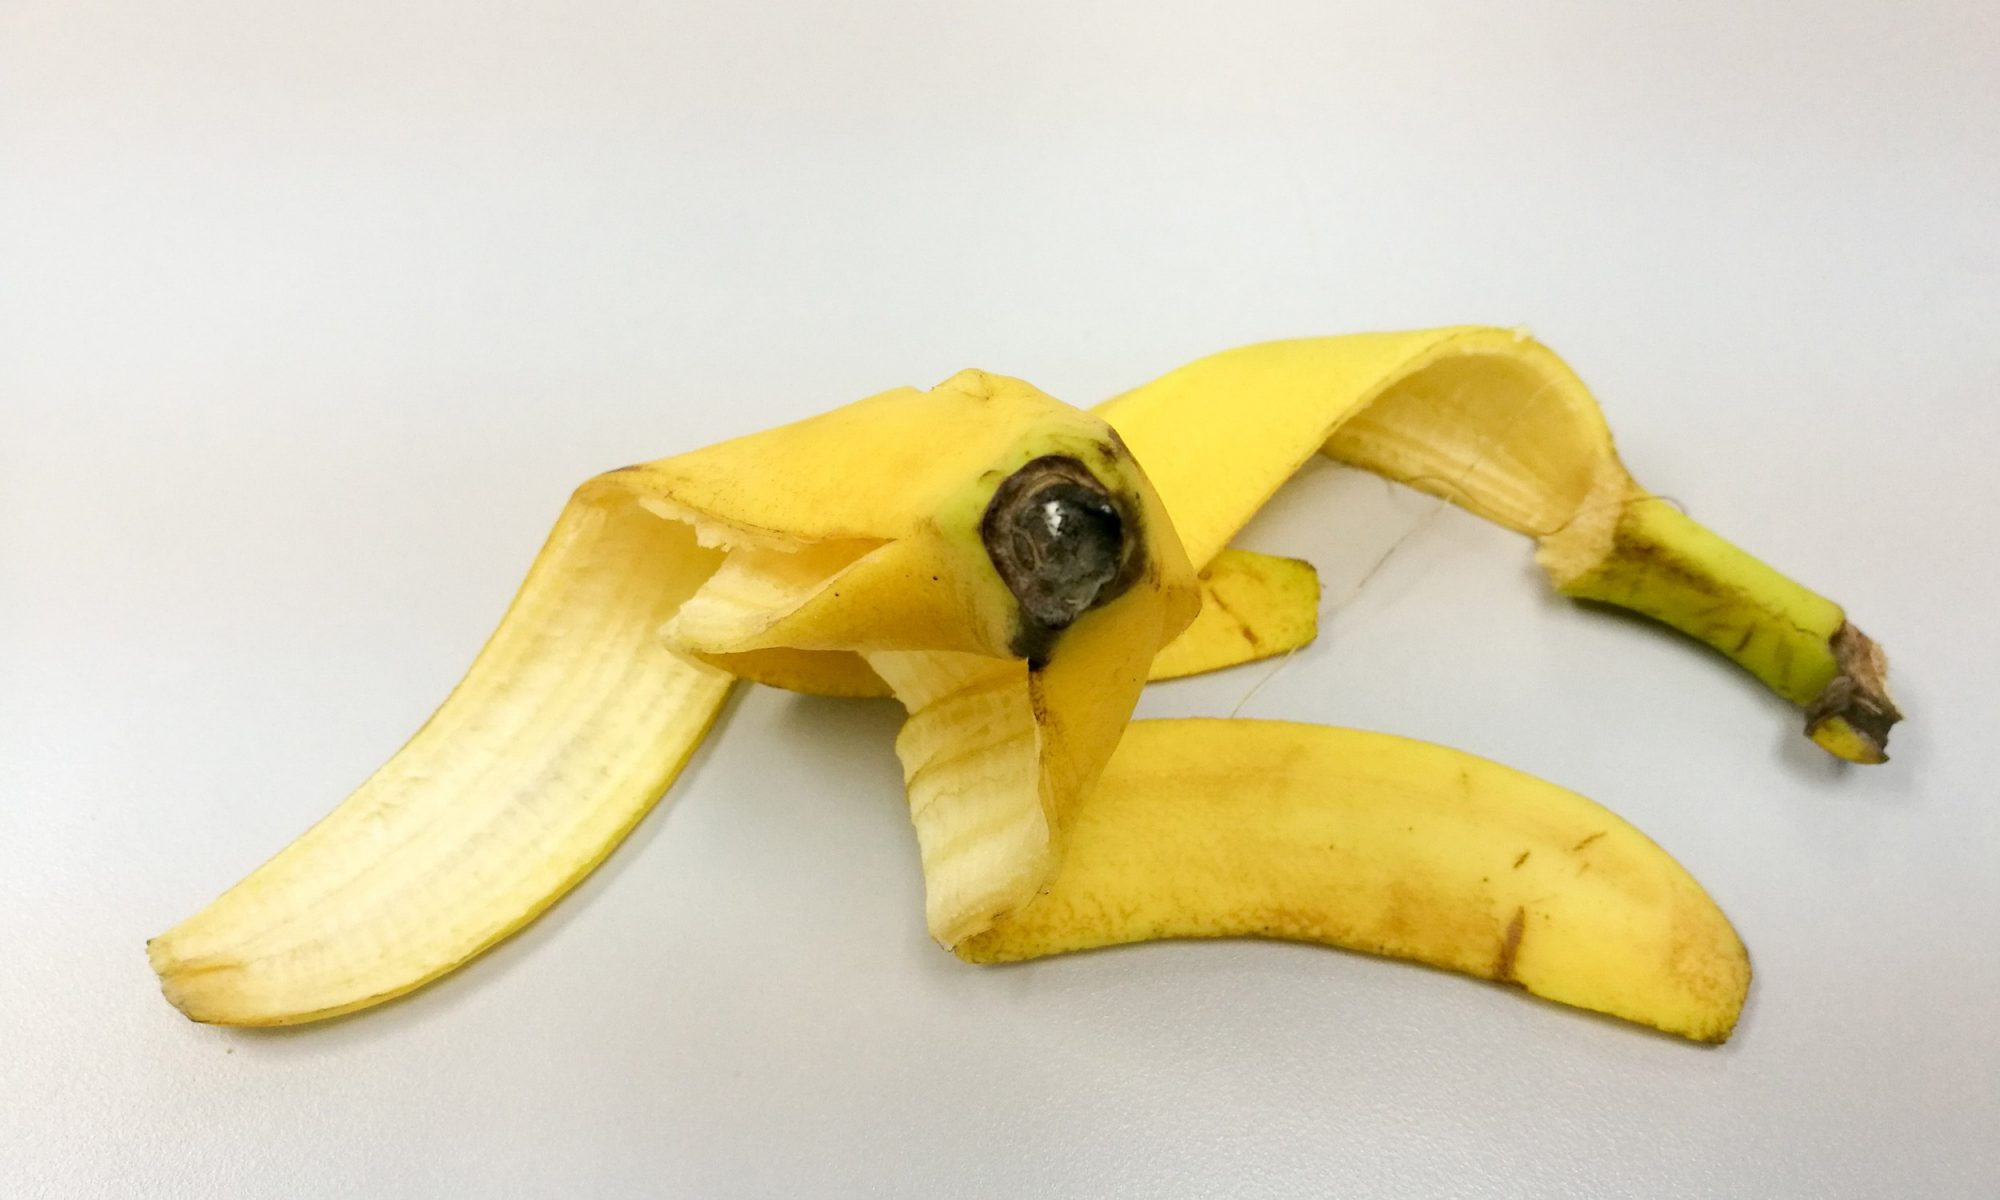 EC: This Artist Uses Banana Peels as a Canvas, and It's Totally Bananas